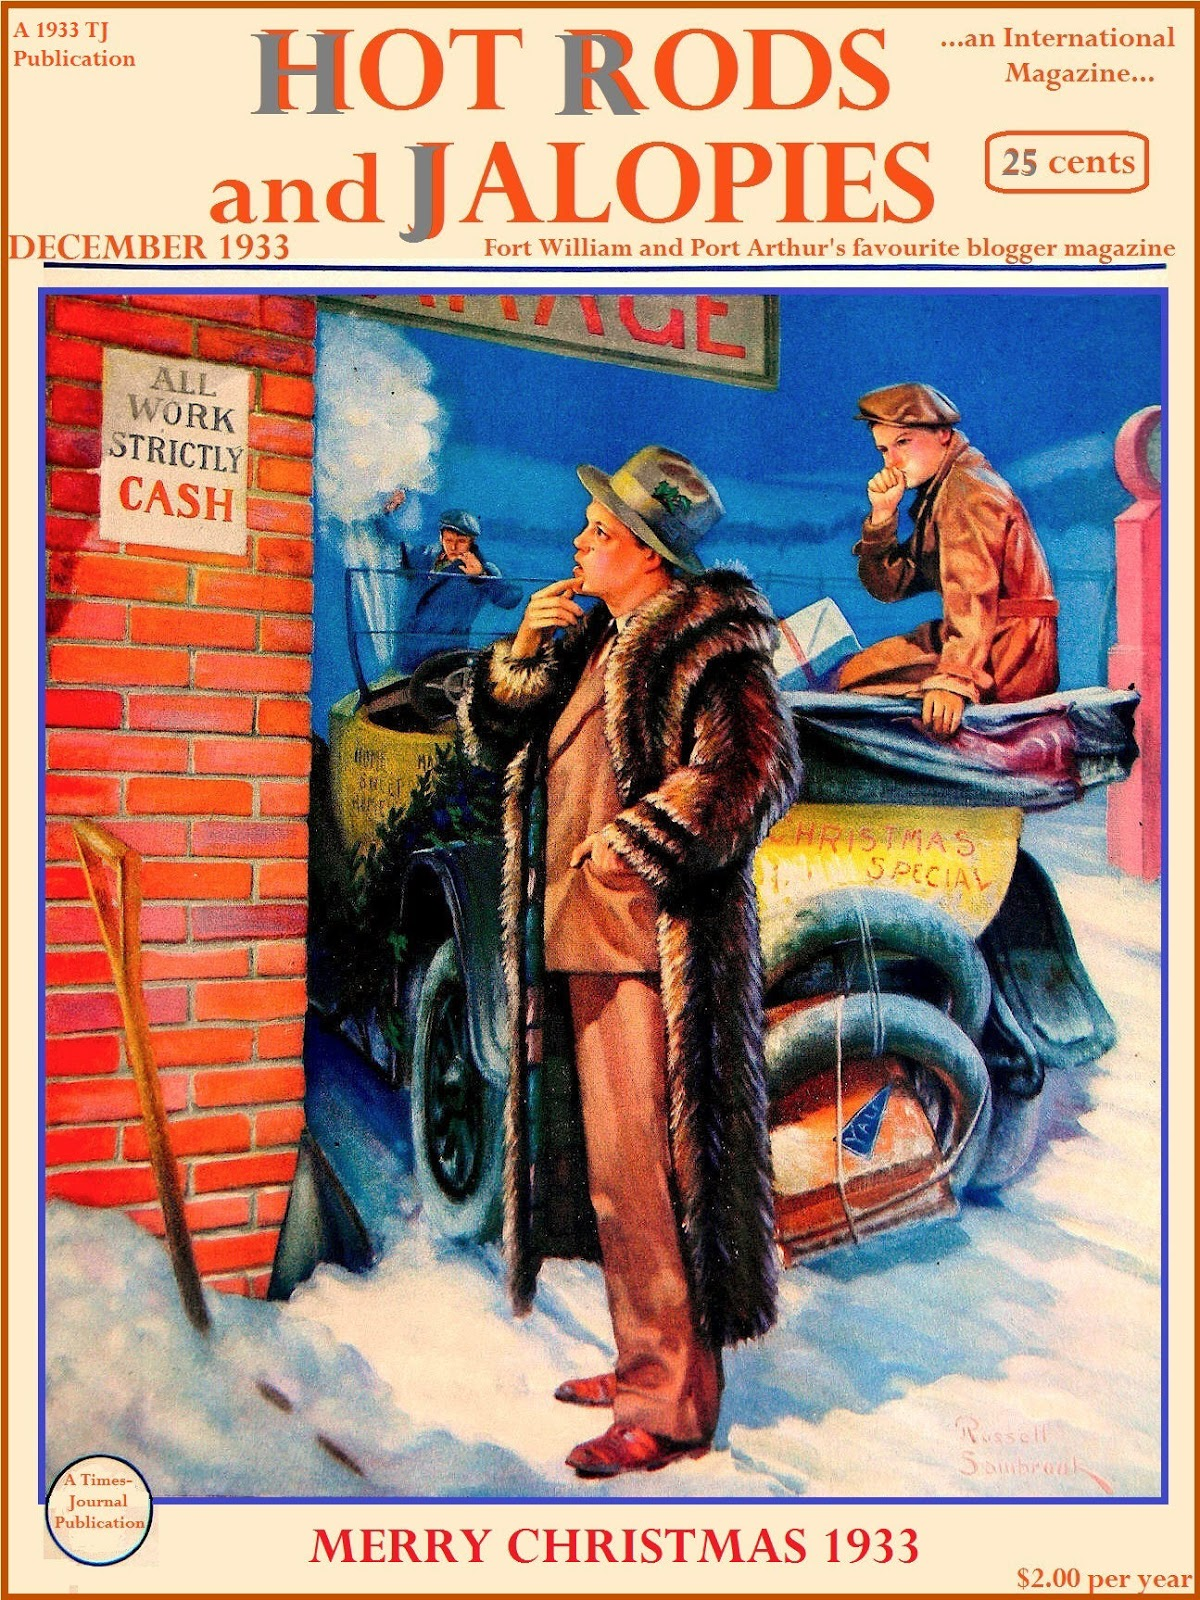 HOT RODS and JALOPIES: First 2015 Christmas Post...tongue in cheek ...